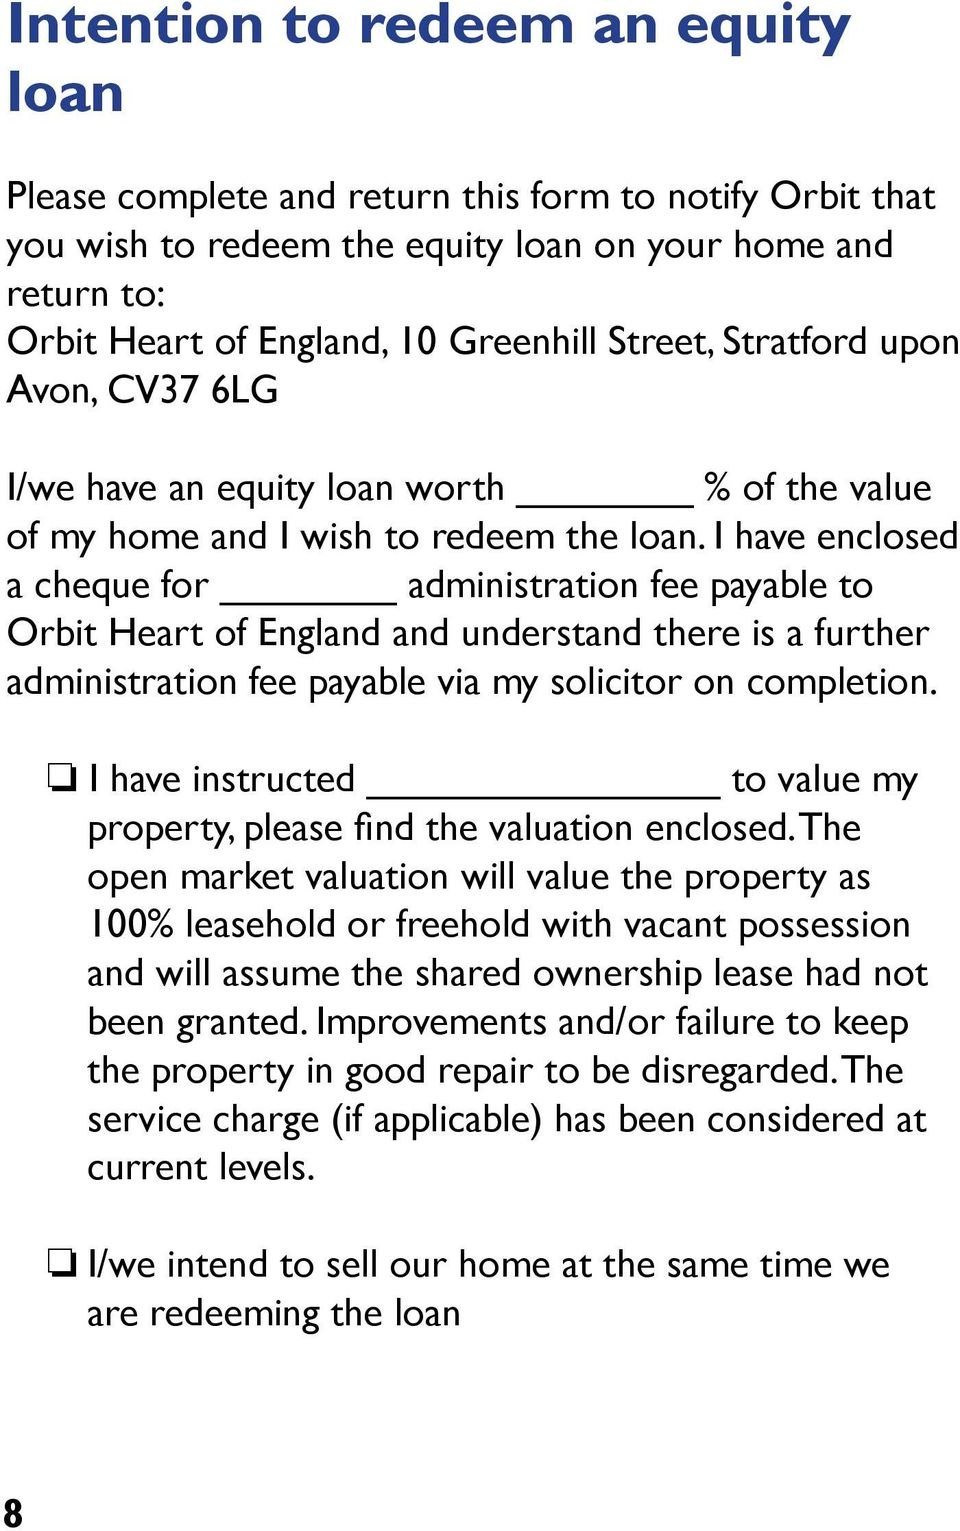 I have enclosed a cheque for administration fee payable to Orbit Heart of England and understand there is a further administration fee payable via my solicitor on completion.